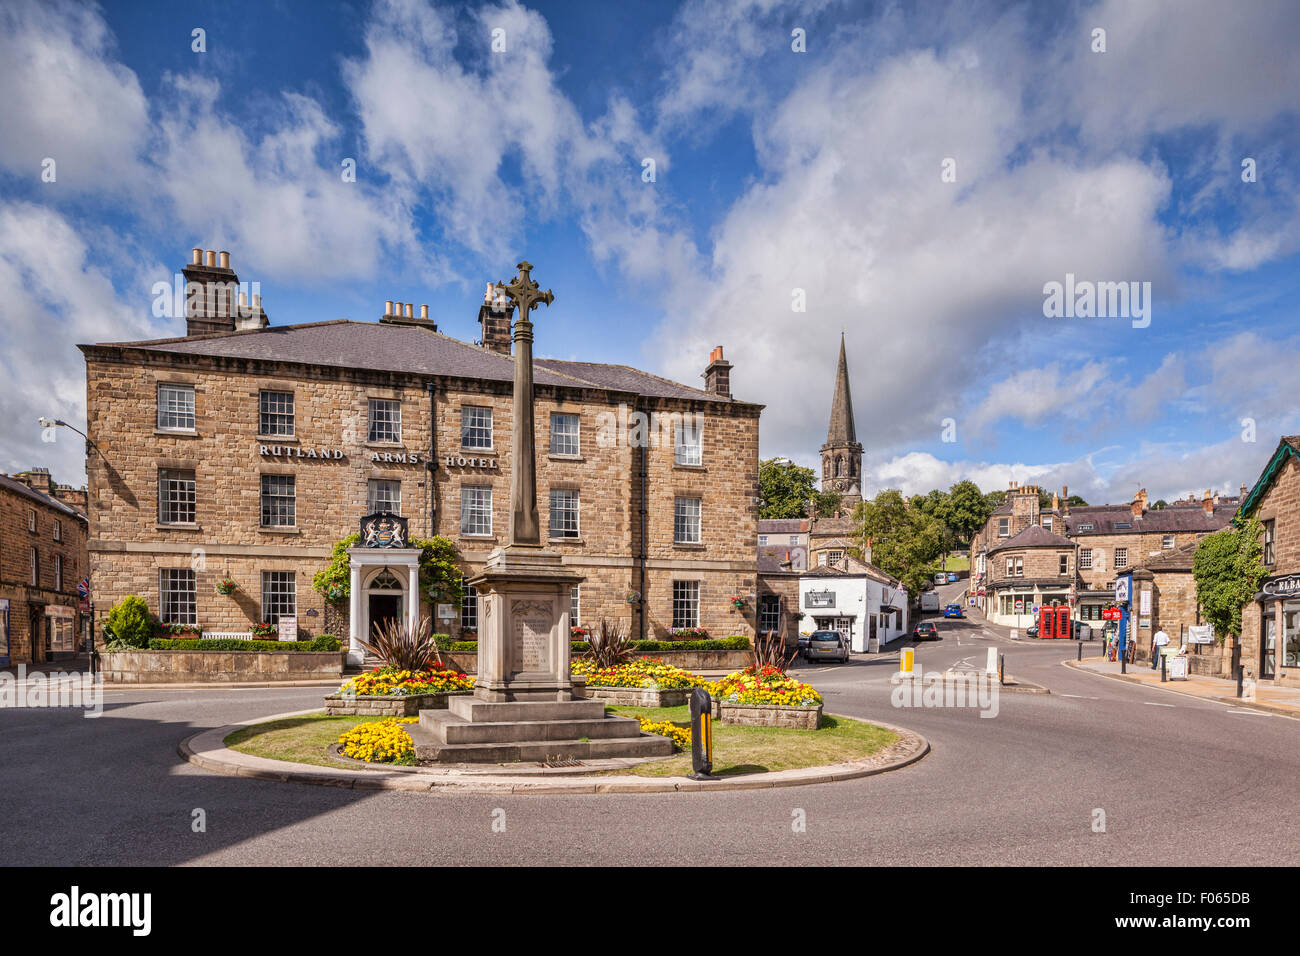 The centre of the Peak District town of Bakewell, with the Rutland Arms Hotel, Bakewell, Derbyshire, England - Stock Image